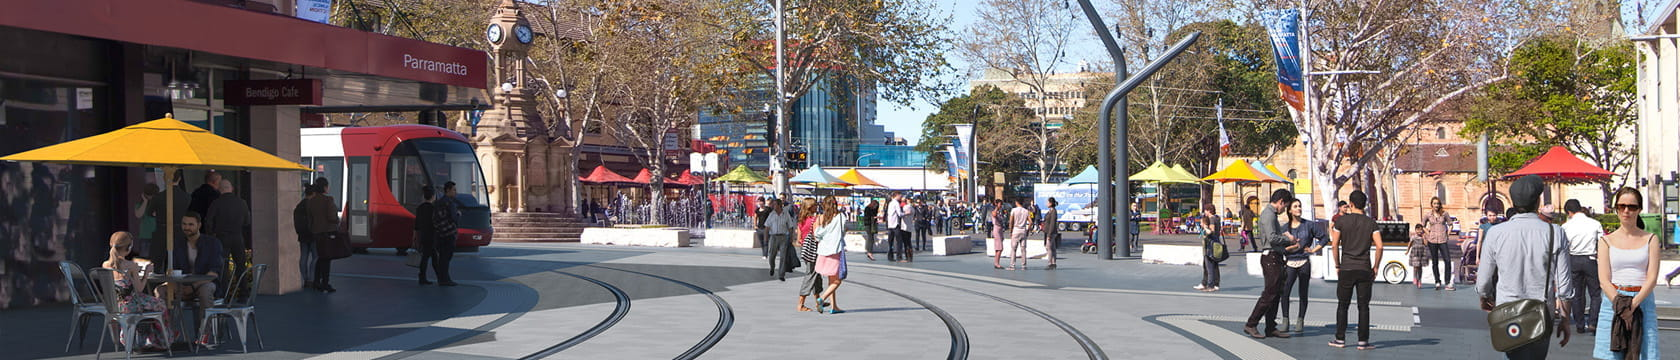 Parramatta Light Rail Centenary Square